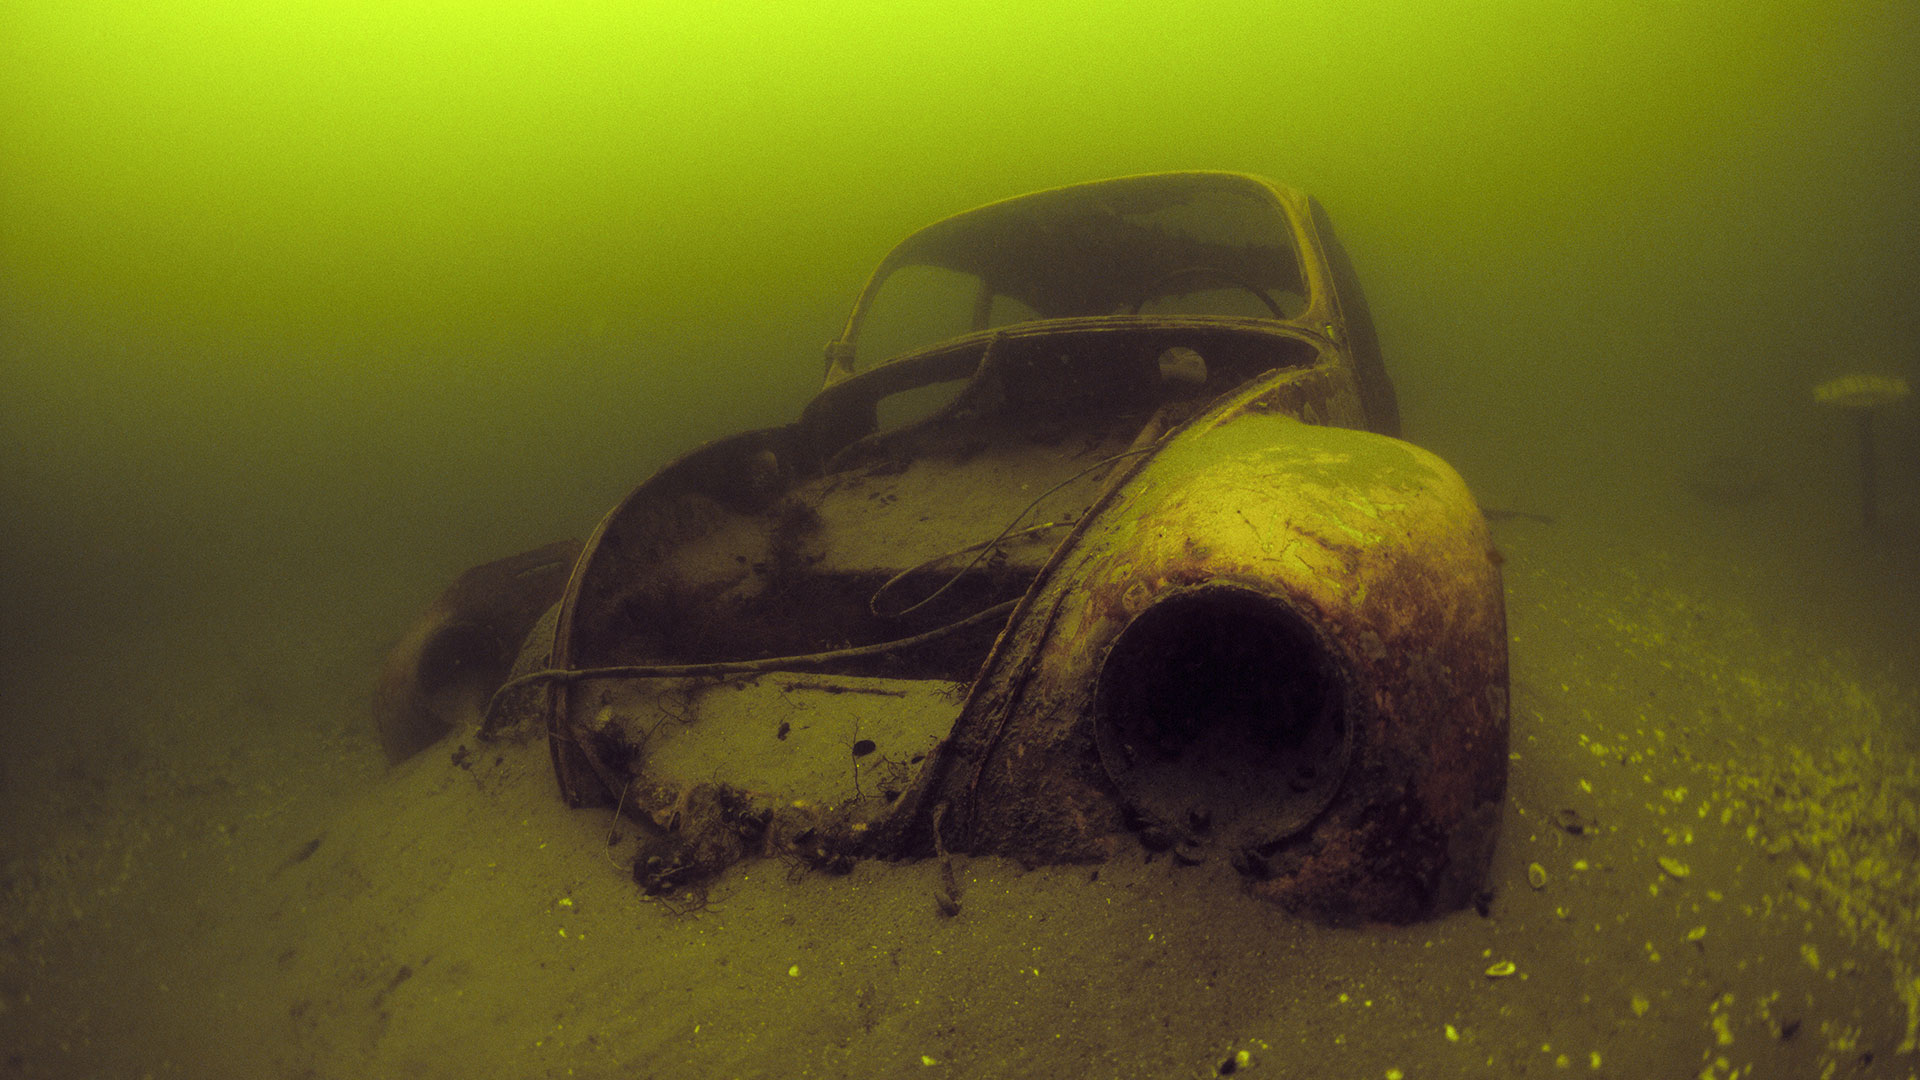 Punch Buggy Car >> Rust and Reef: Exploring Underwater Car Ruins - The Drive